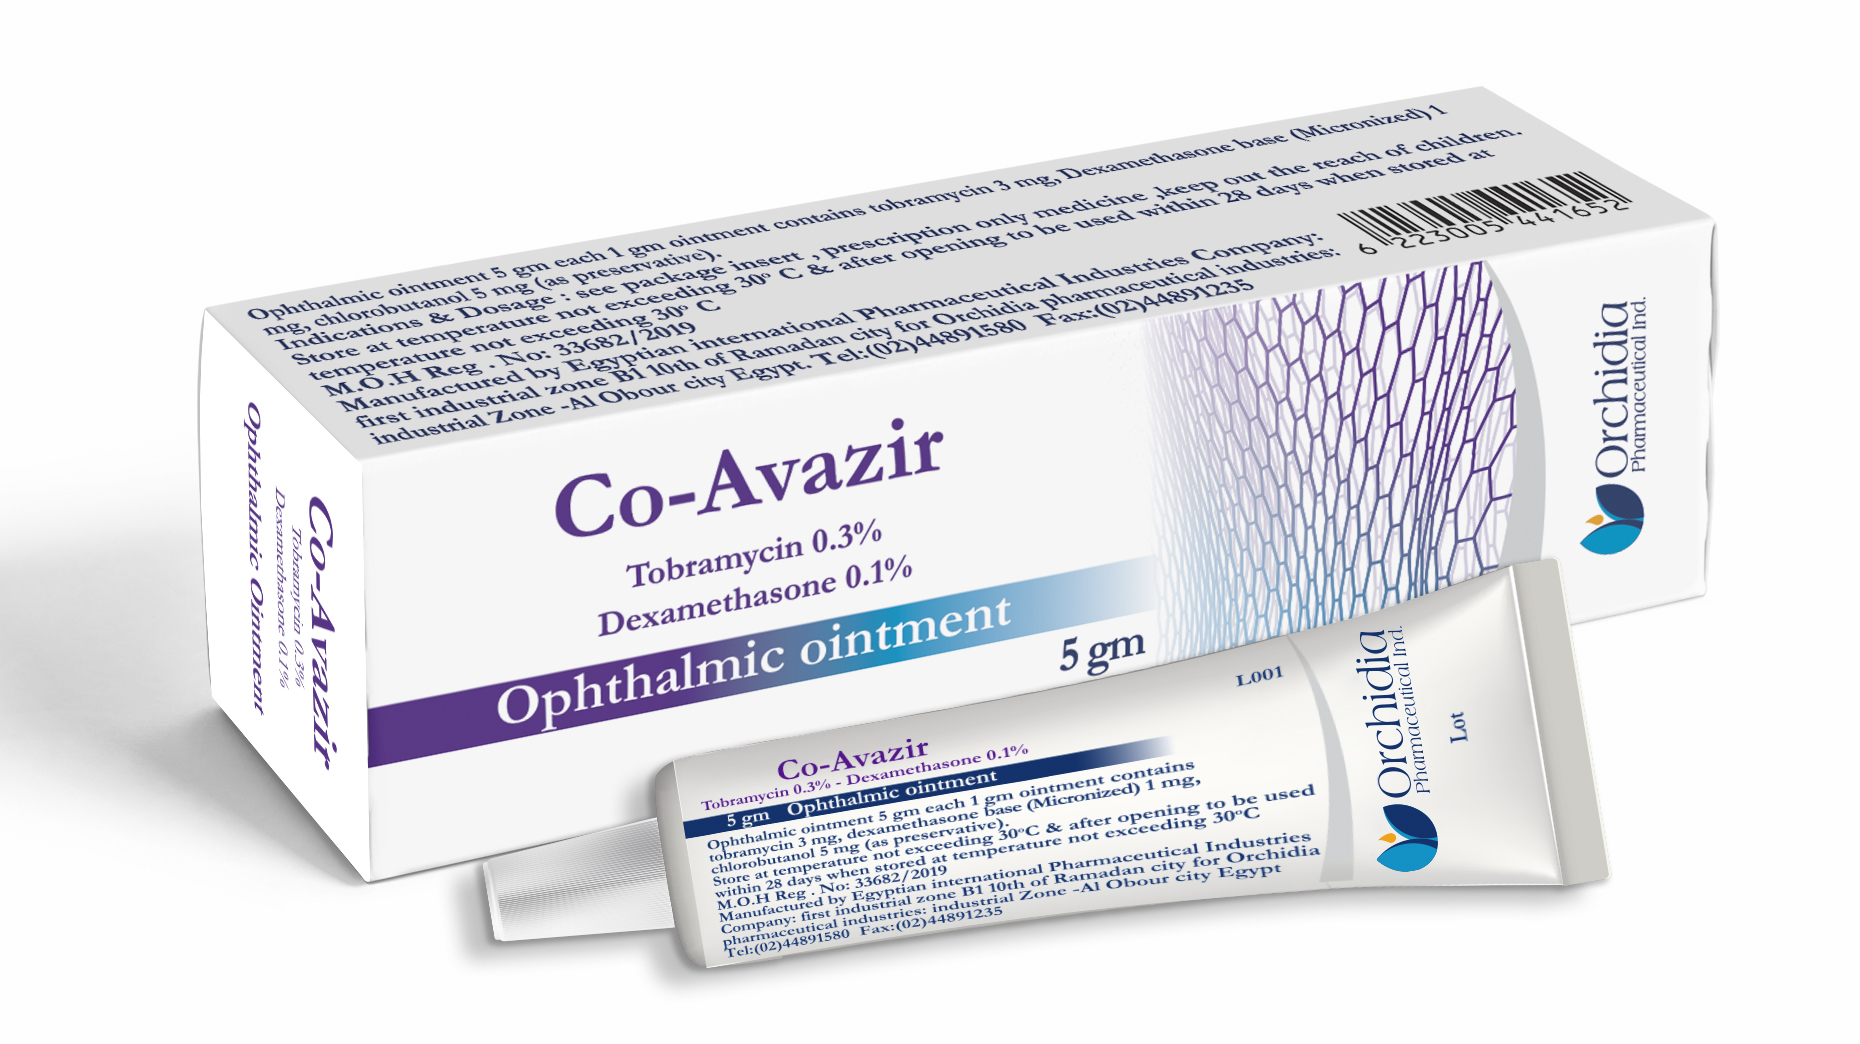 CO-AVAZIR ointment